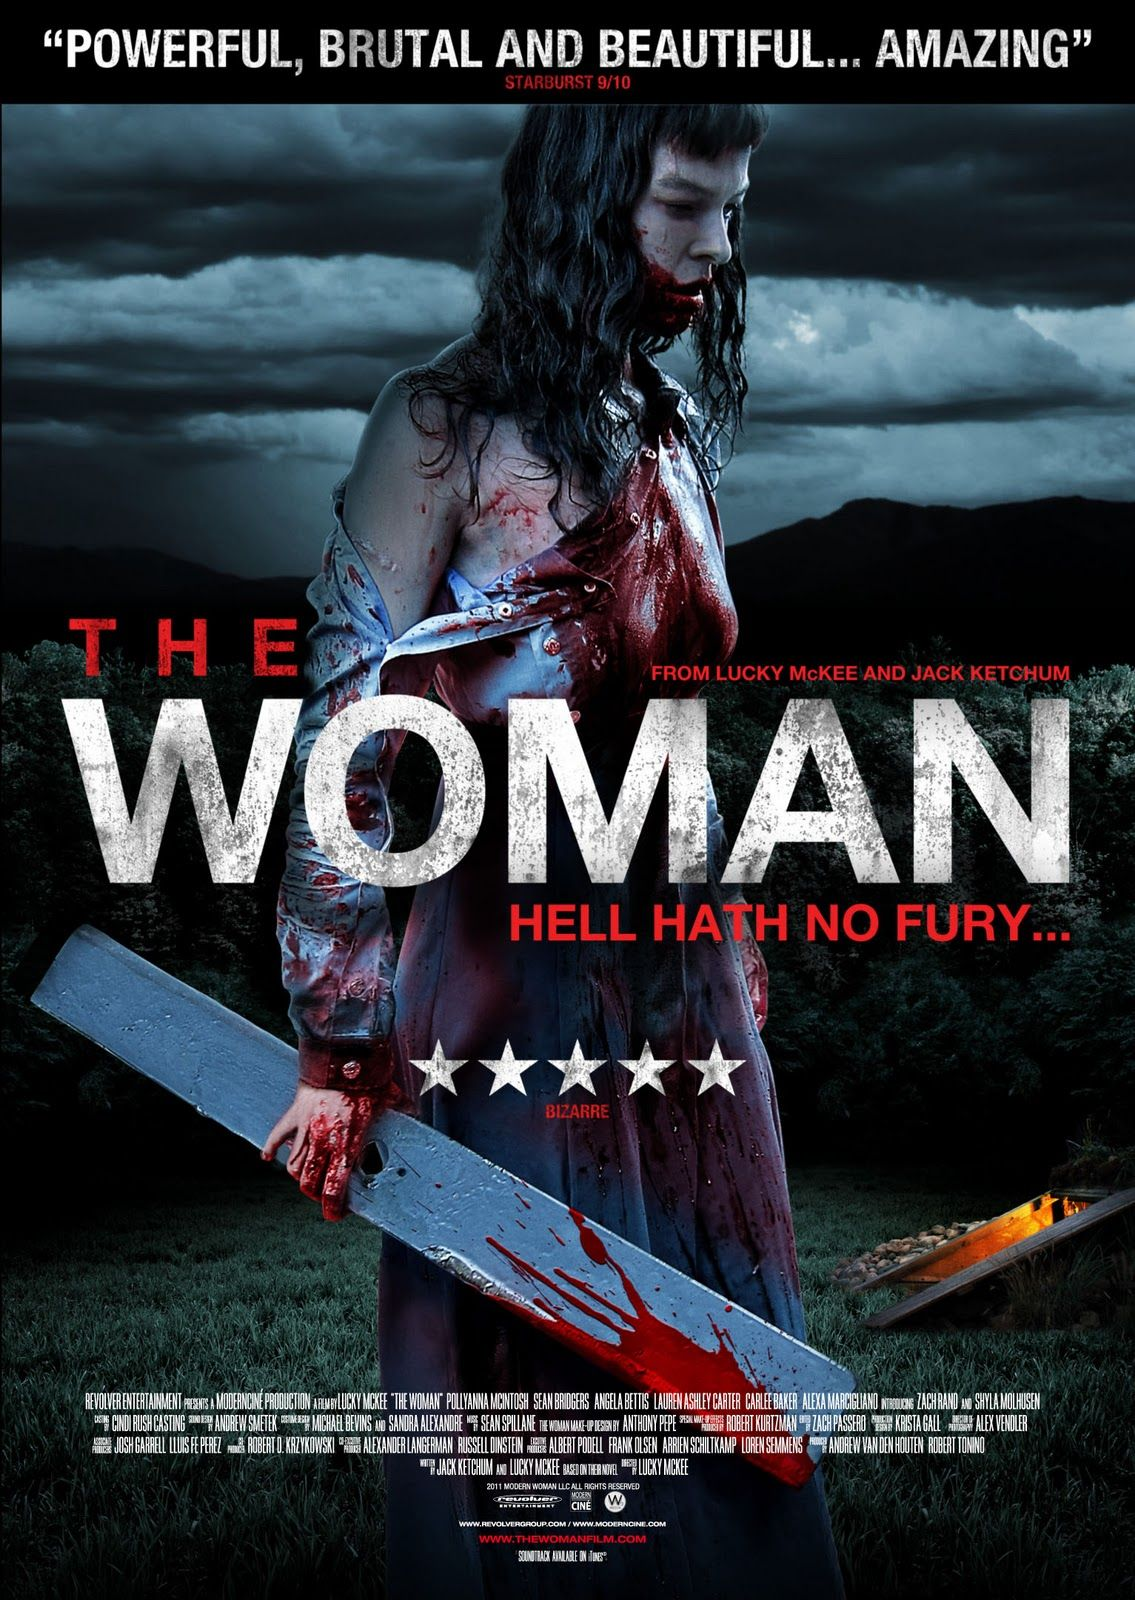 "The Woman(2011)--OH MY GOD I cannot say enough about the awesomeness of this movie.  A psycho sadist father captures a feral woman and brings her back to his family so he can ""tame"" her.  Let the torture and depravity ensue.  This movie is full of plot twists that you do not see coming.  The acting is awesome by everyone in this film and the end will leave you speechless, shocked and with a sense of triumph.  Very disturbing, graphic, violent, and AWESOME.  Do not miss this film."